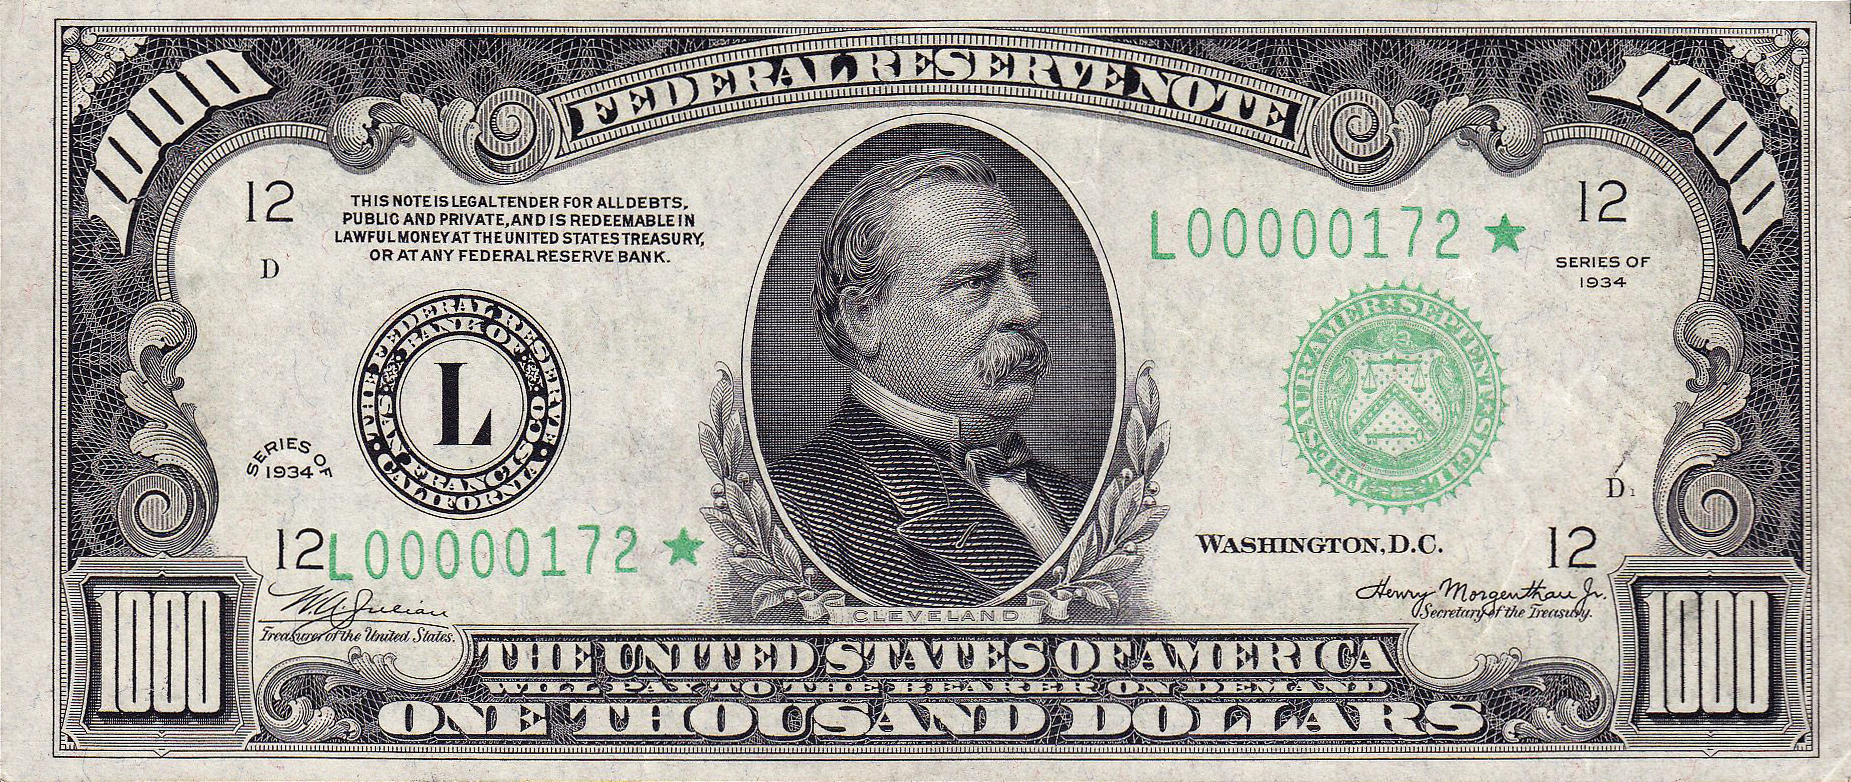 Bills clipart five dollar. File usd note series